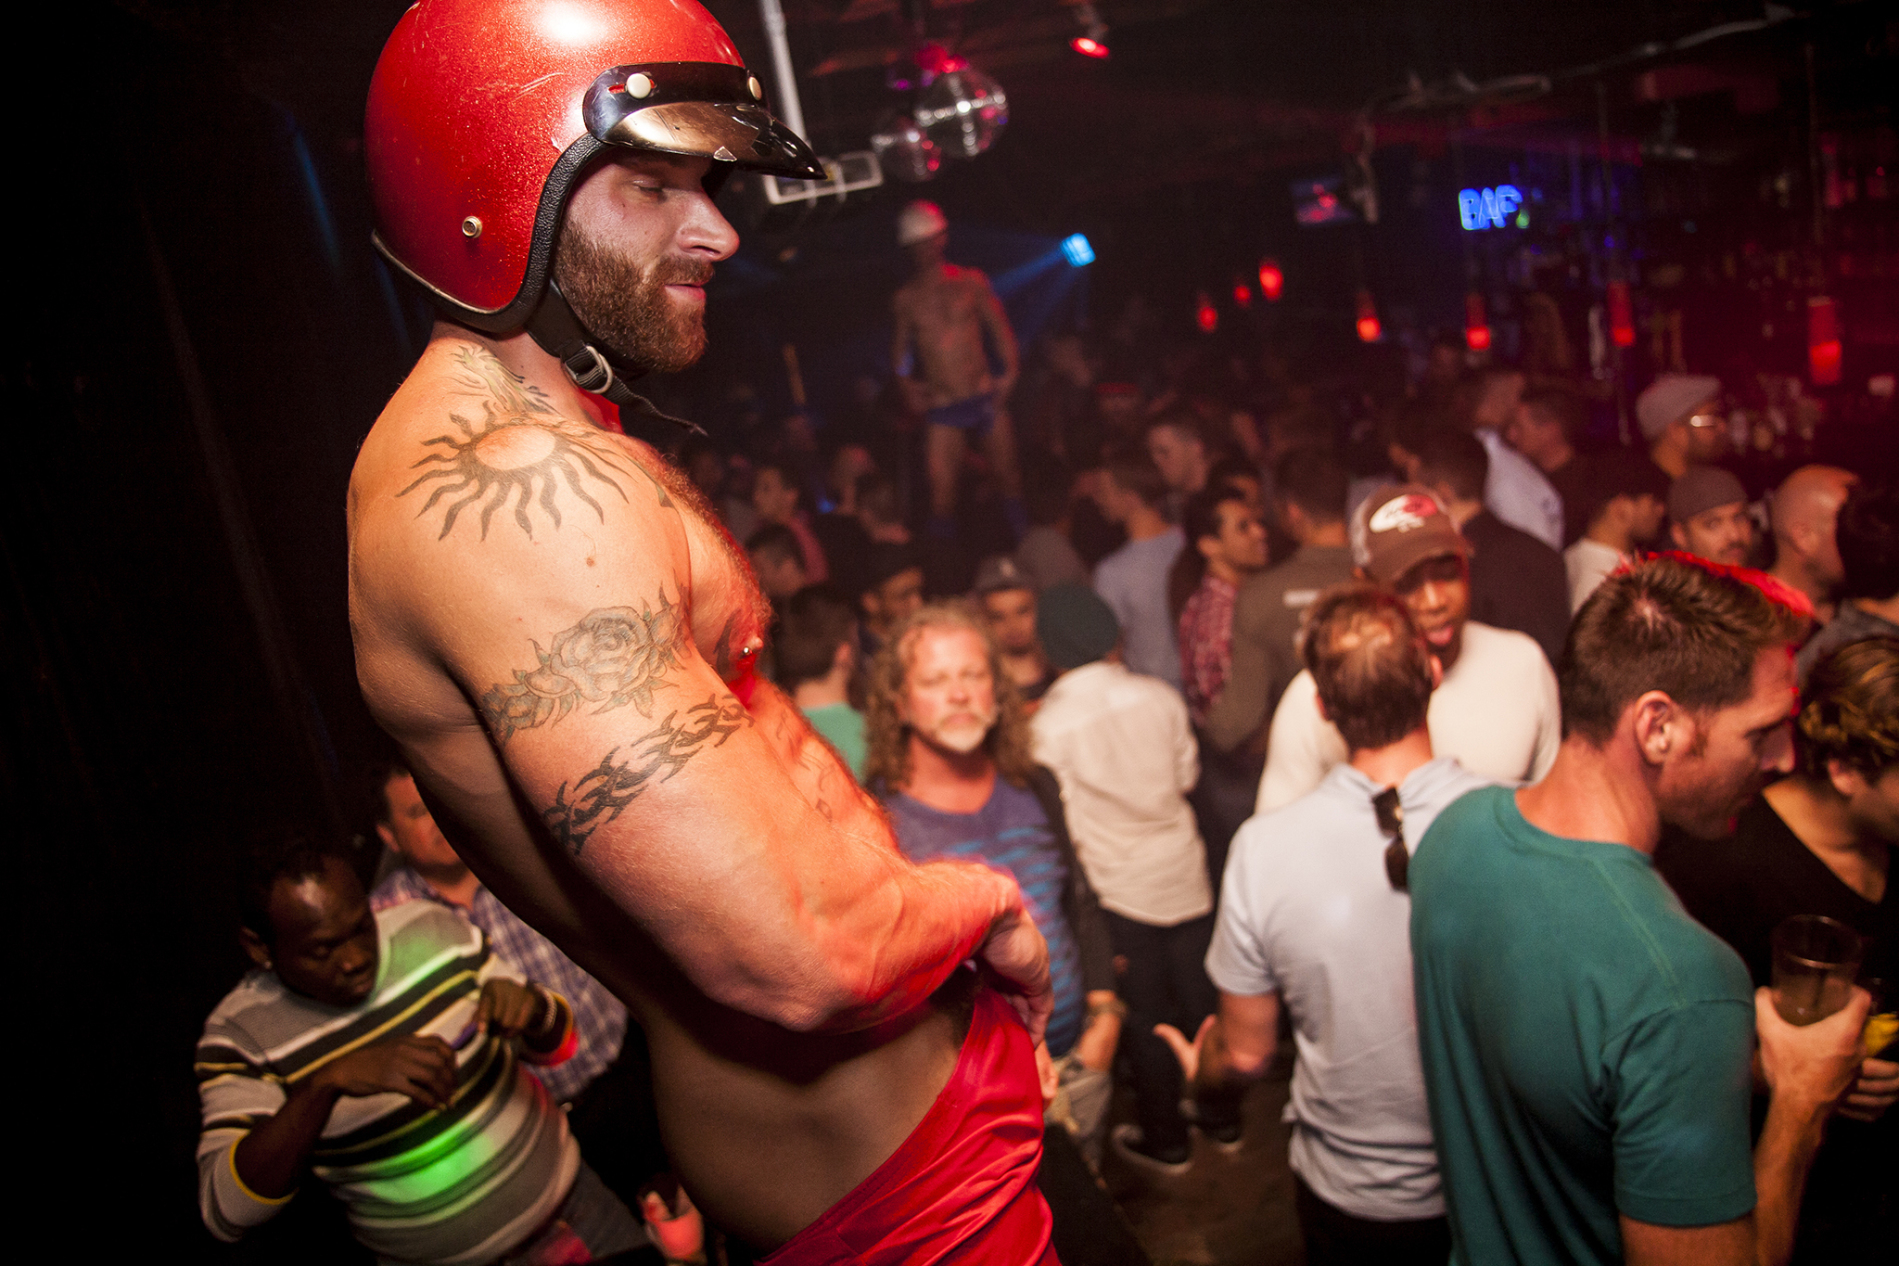 gay sex clubs in chicago il